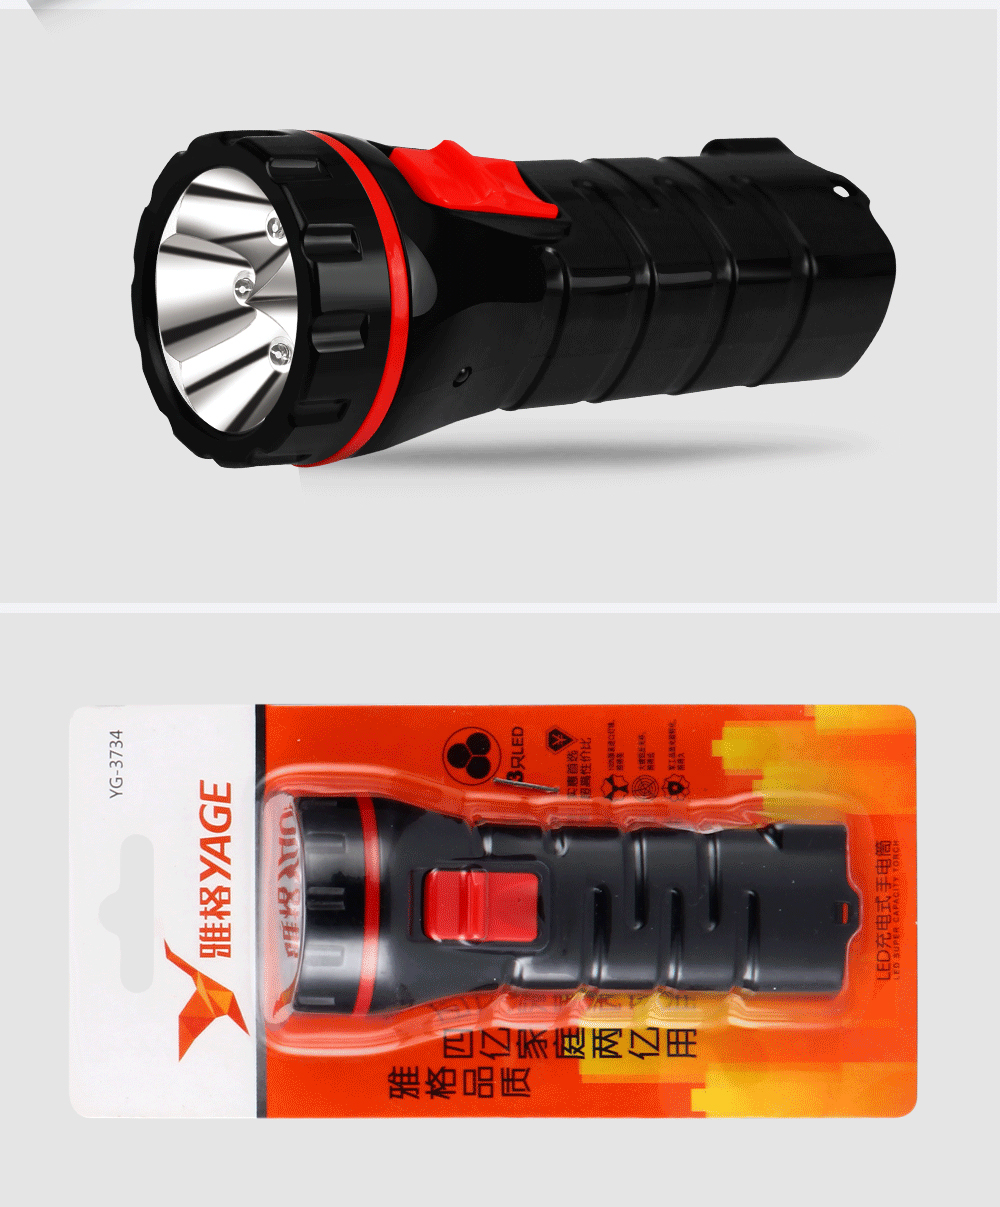 Yage 3734 Led Flashlight Night Light Torch Literna Laterna How To Make A Bulb 8211 For 2 15 Volt Batterie Battery Inside Lampe Torche Mini Walking Camping